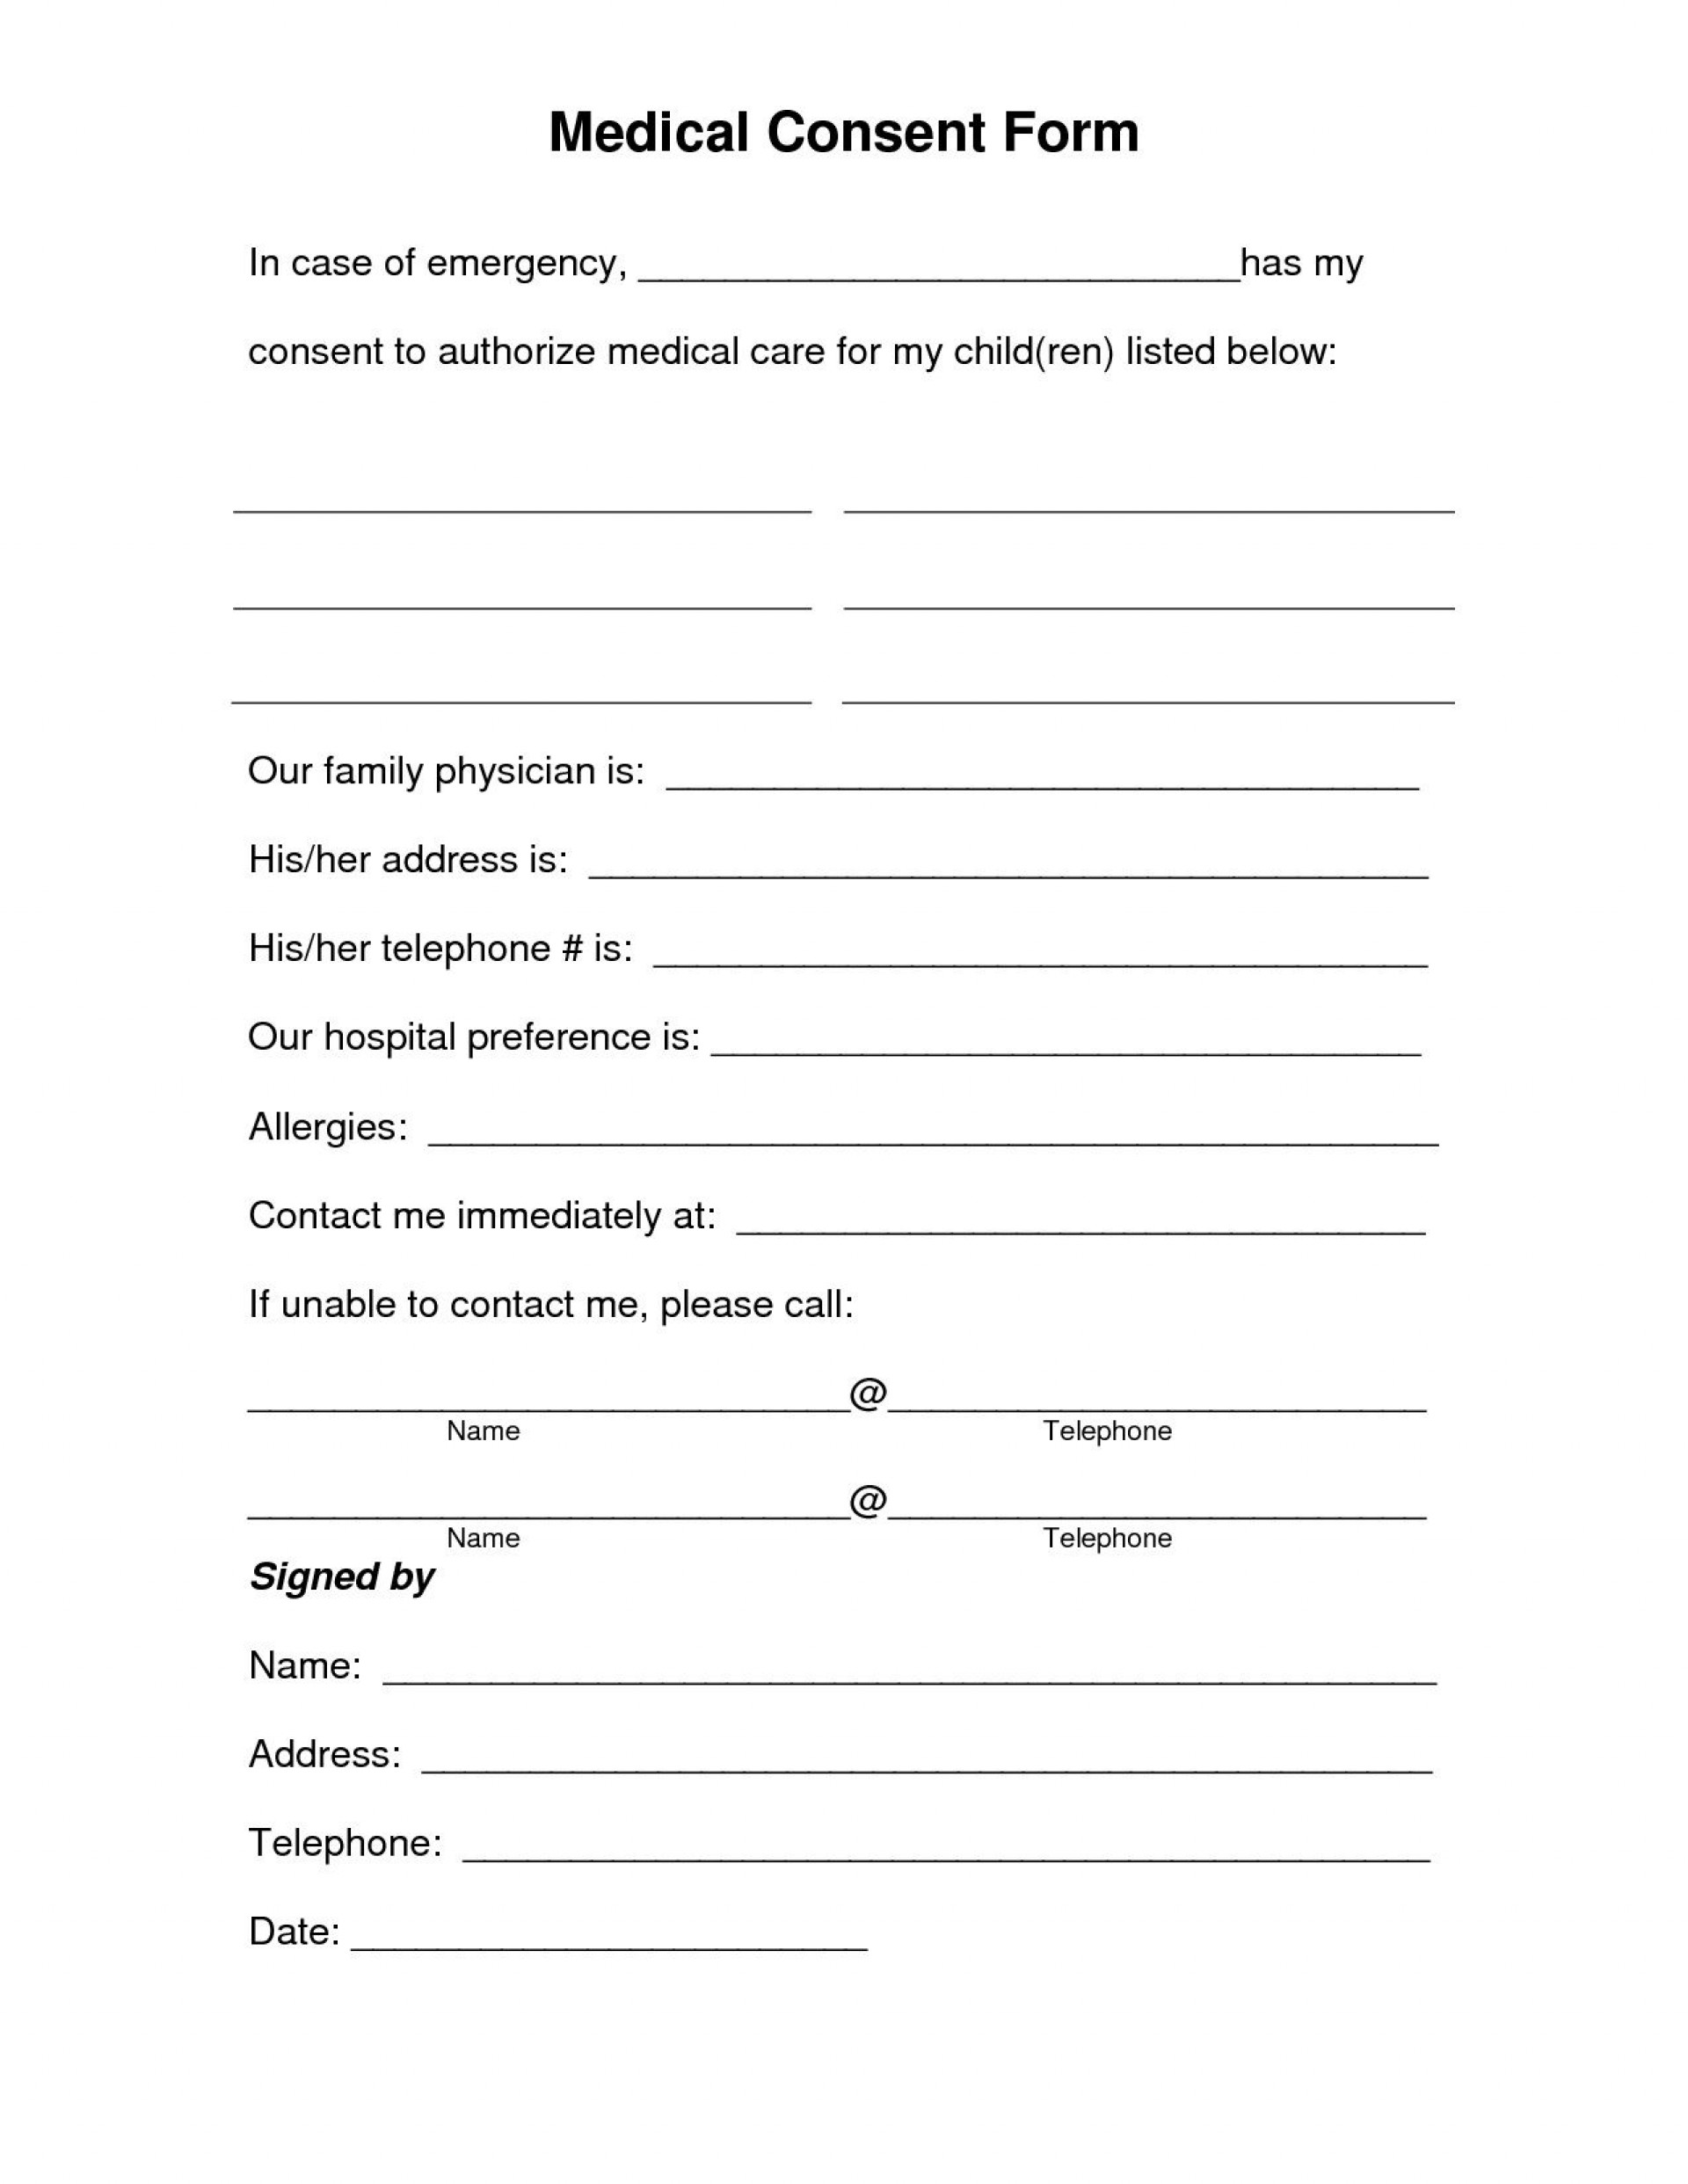 003 Singular Medical Release Form Template Idea  Free Consent Uk For Minor1920